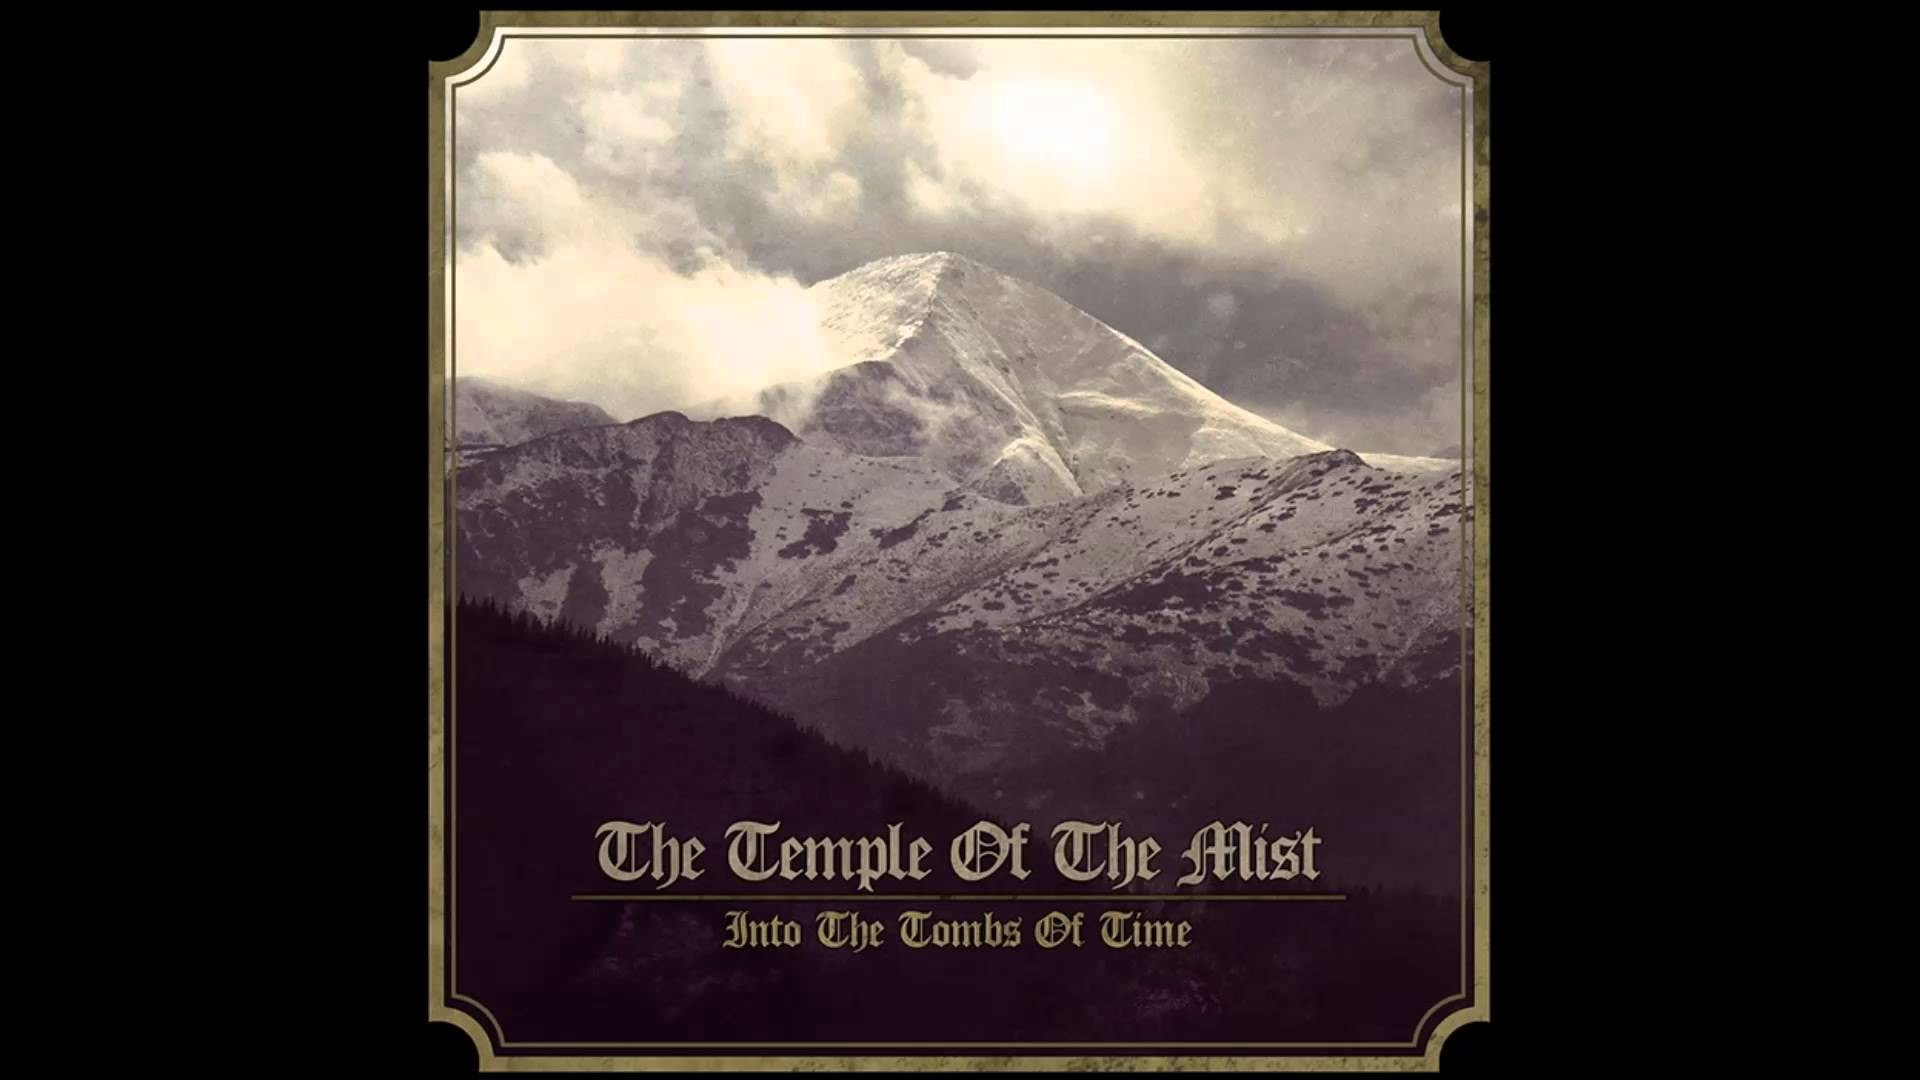 1920x1080 The Temple Of The Mist - The Past And Storms [Into The Tombs of Time] 2015